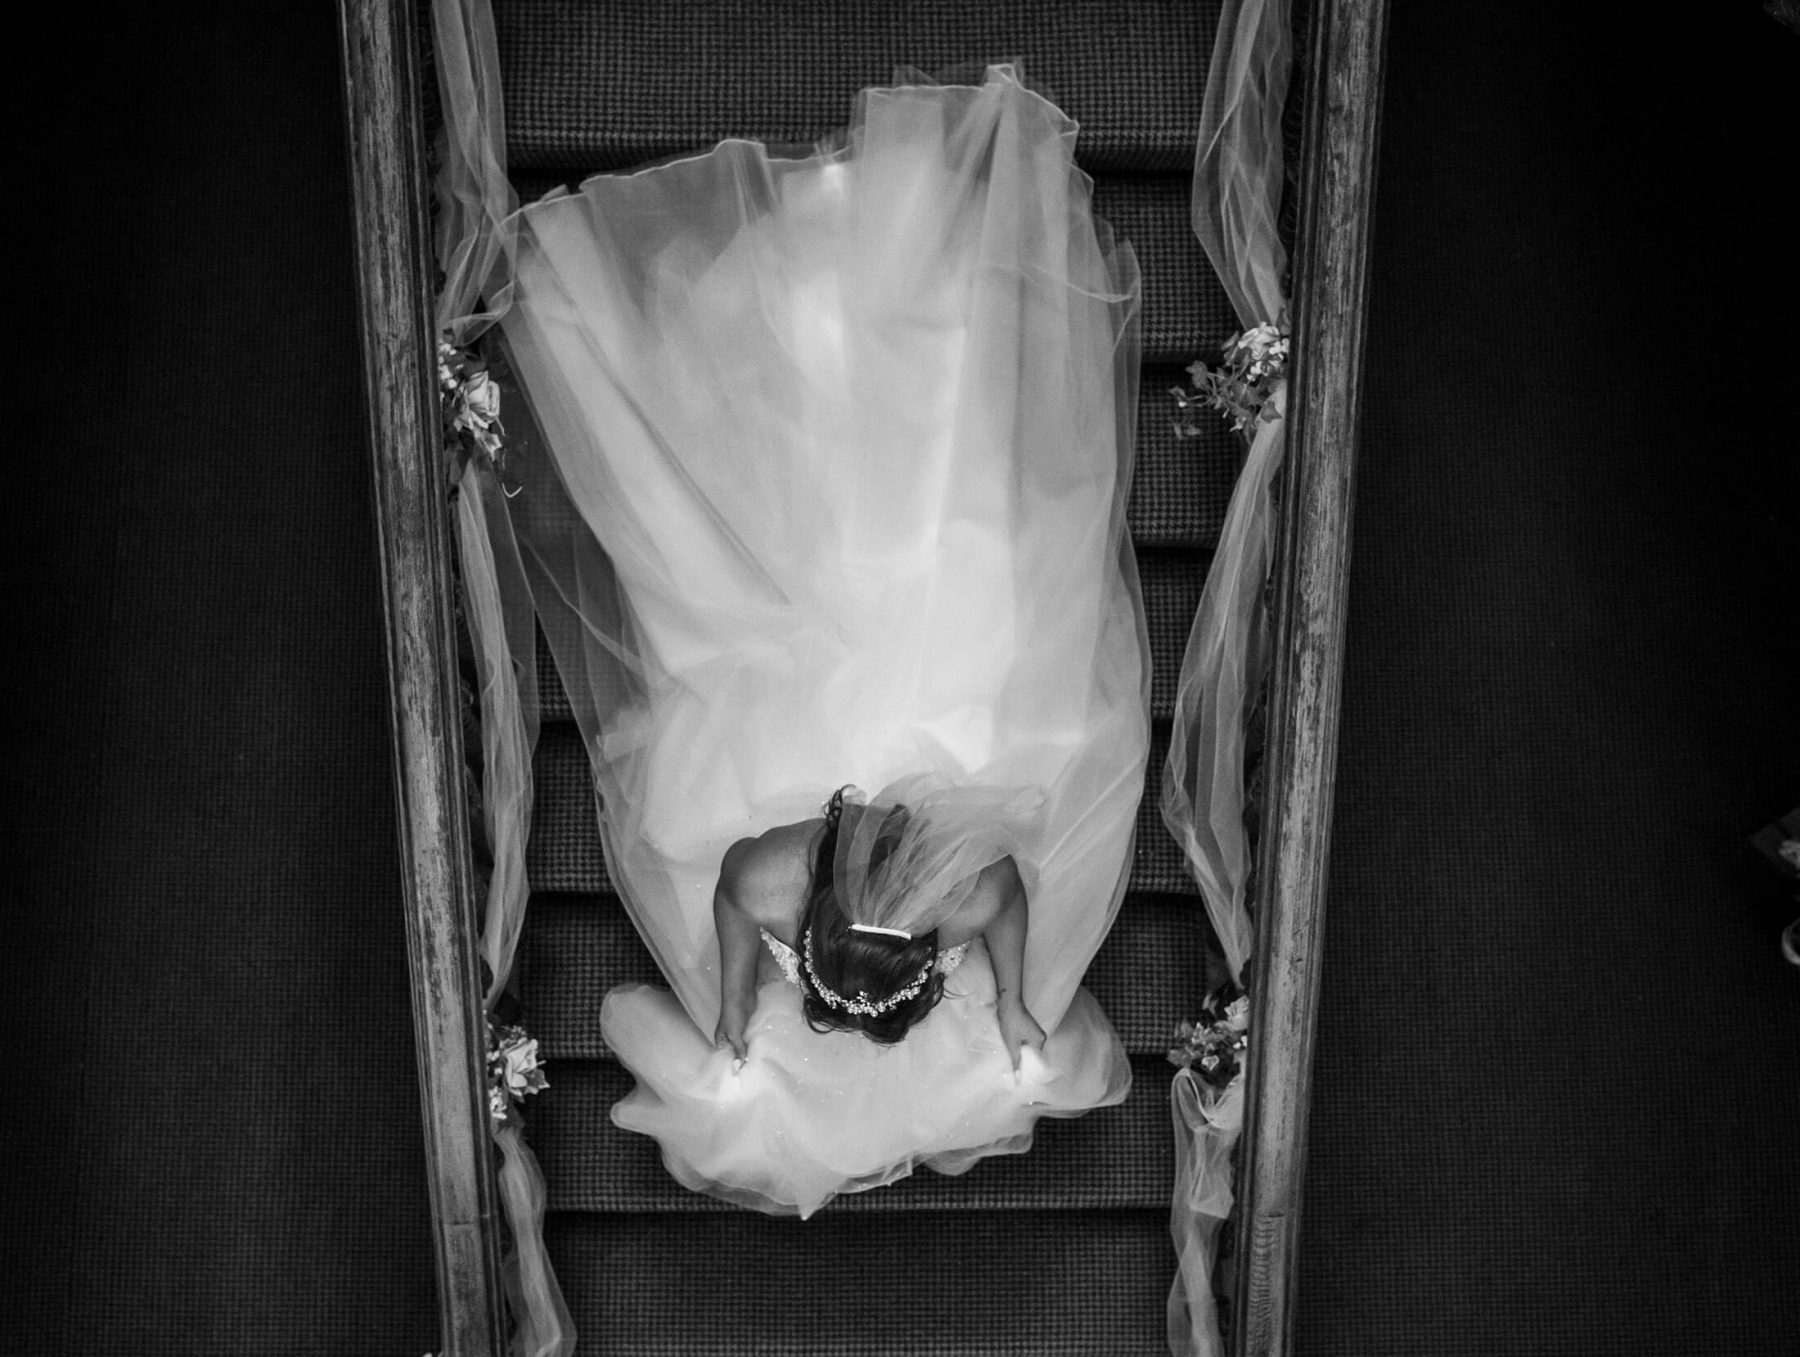 Hollin Hall Hotel Wedding Photographer - A photograph shot from above shows the bride walking donwstairs for the ceremony